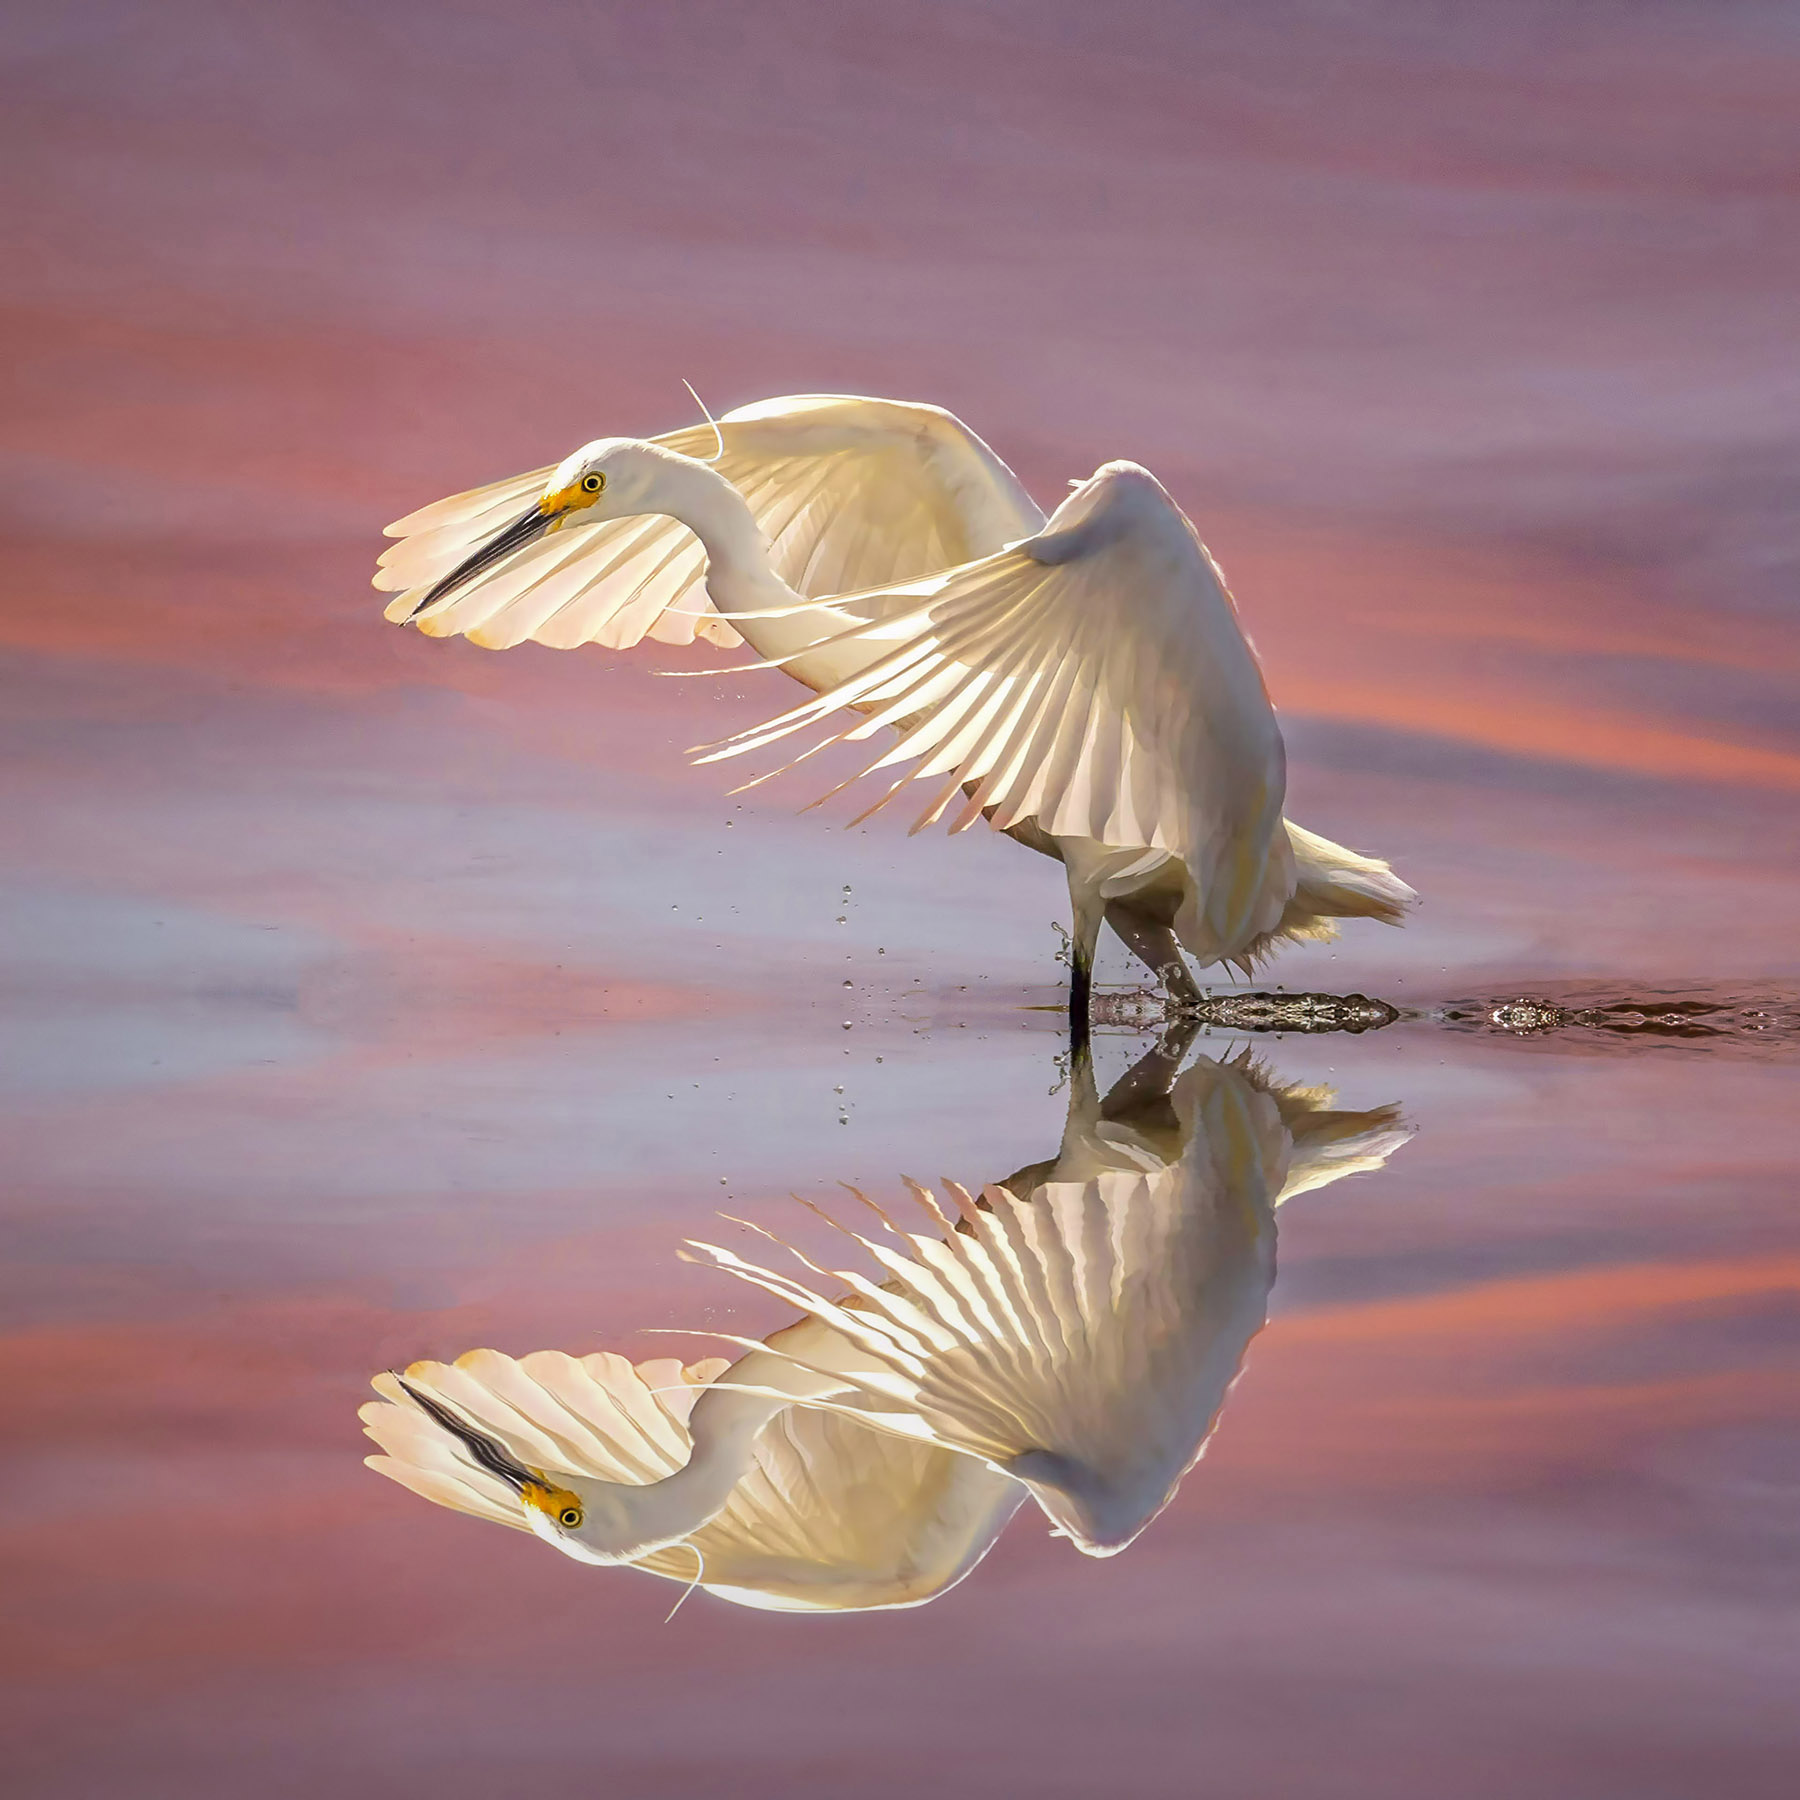 Reflection by Jan Robinson